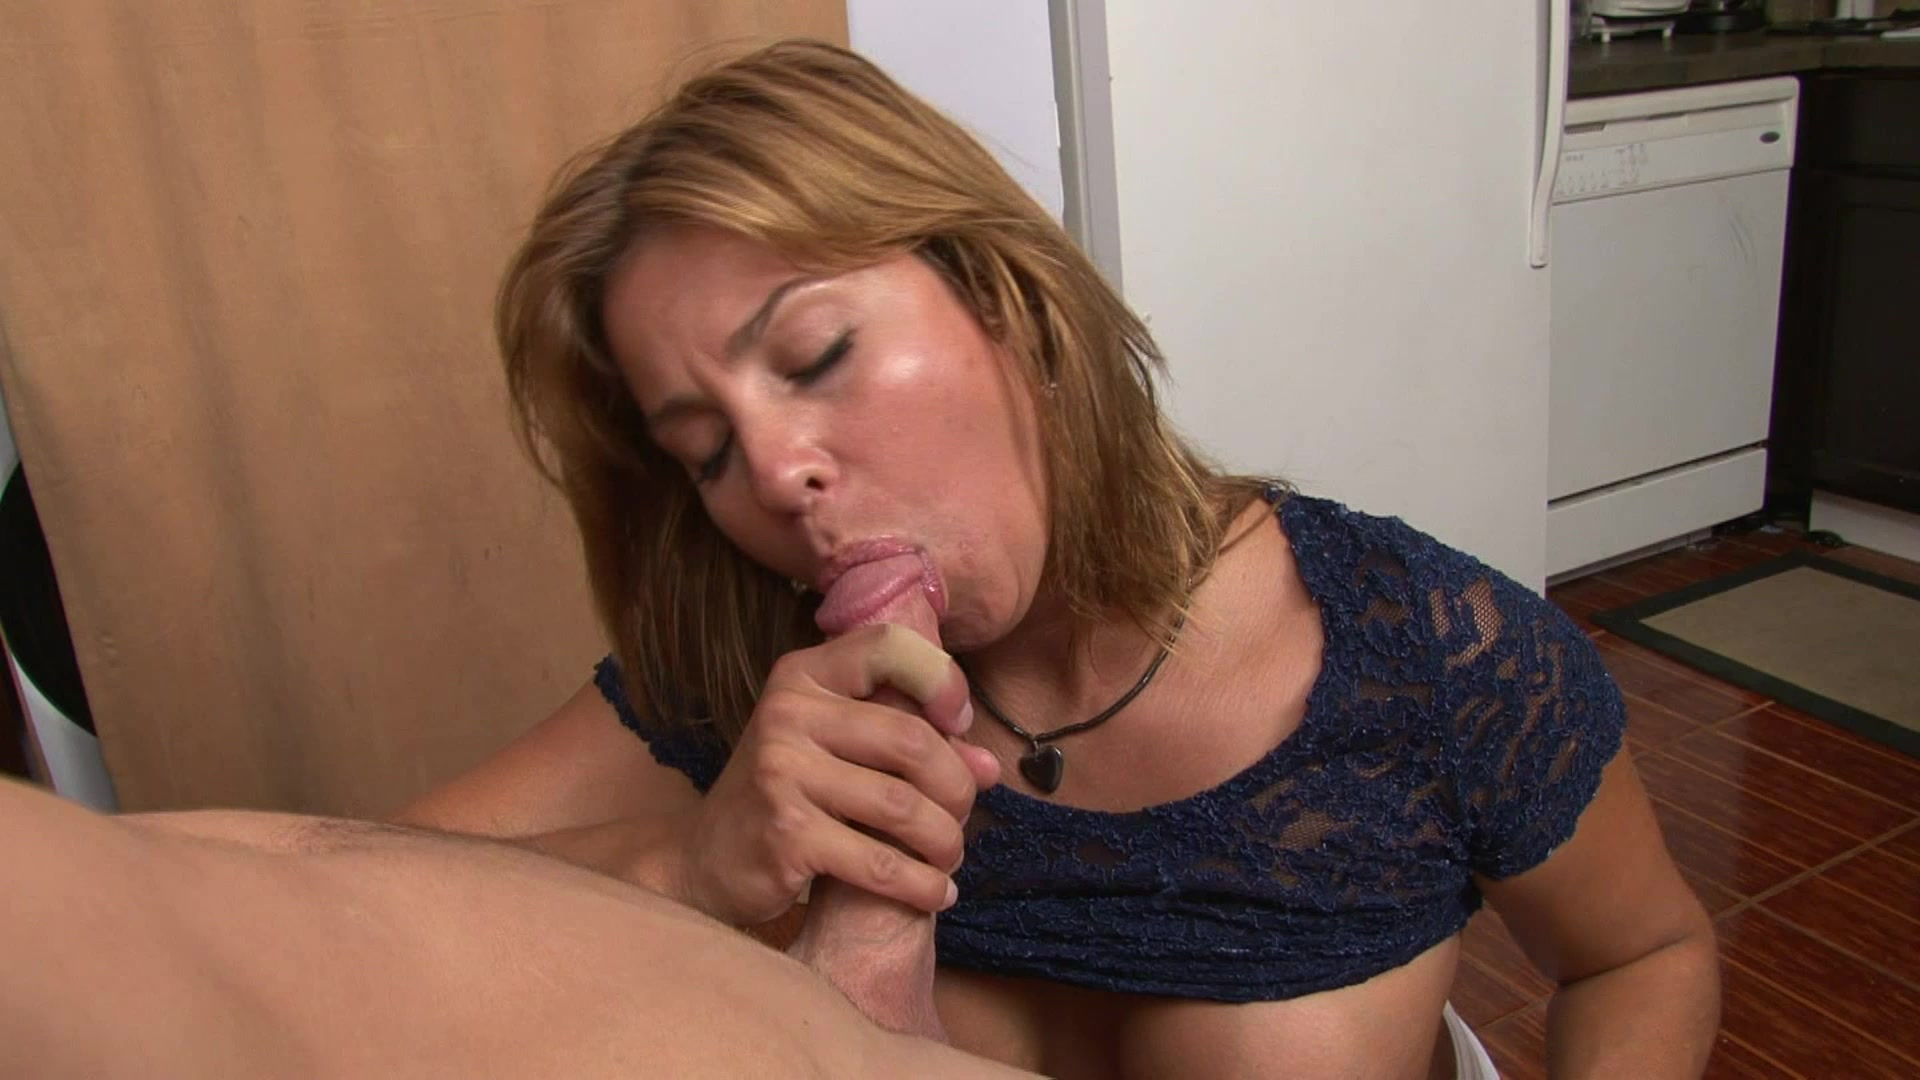 Monsters of jizz milf creamed on pussy and ass